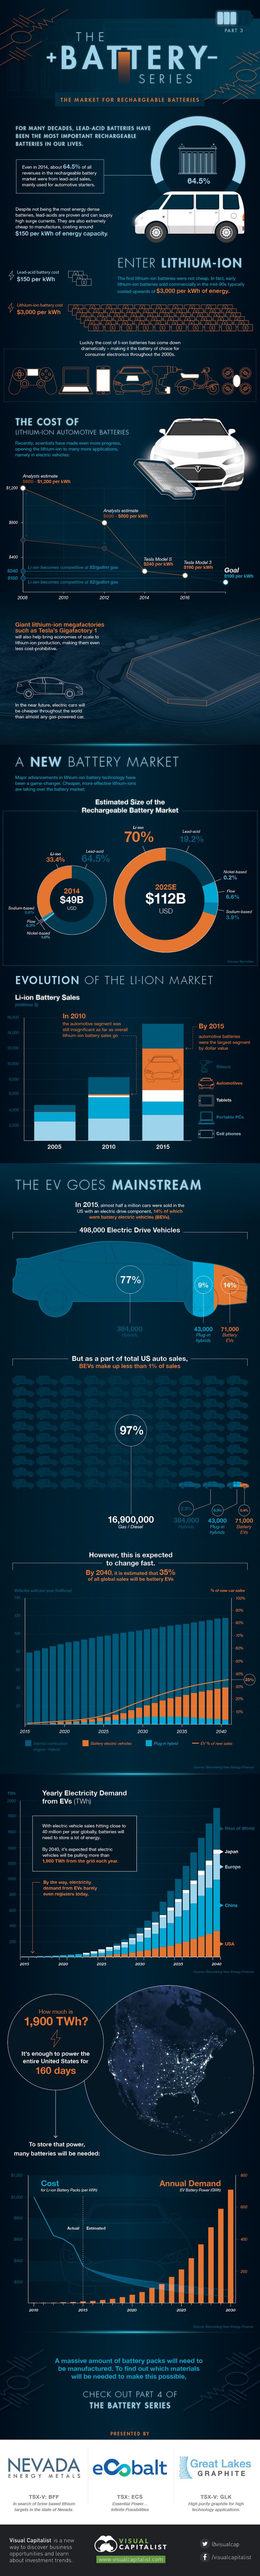 To learn more about how Tesla dominates electric vehicle lithium-ion batteries, click here: https://evannex.com/blogs/news/tesla-dominates-as-industry-leader-in-electric-vehicle-lithium-ion-batteries-infographic